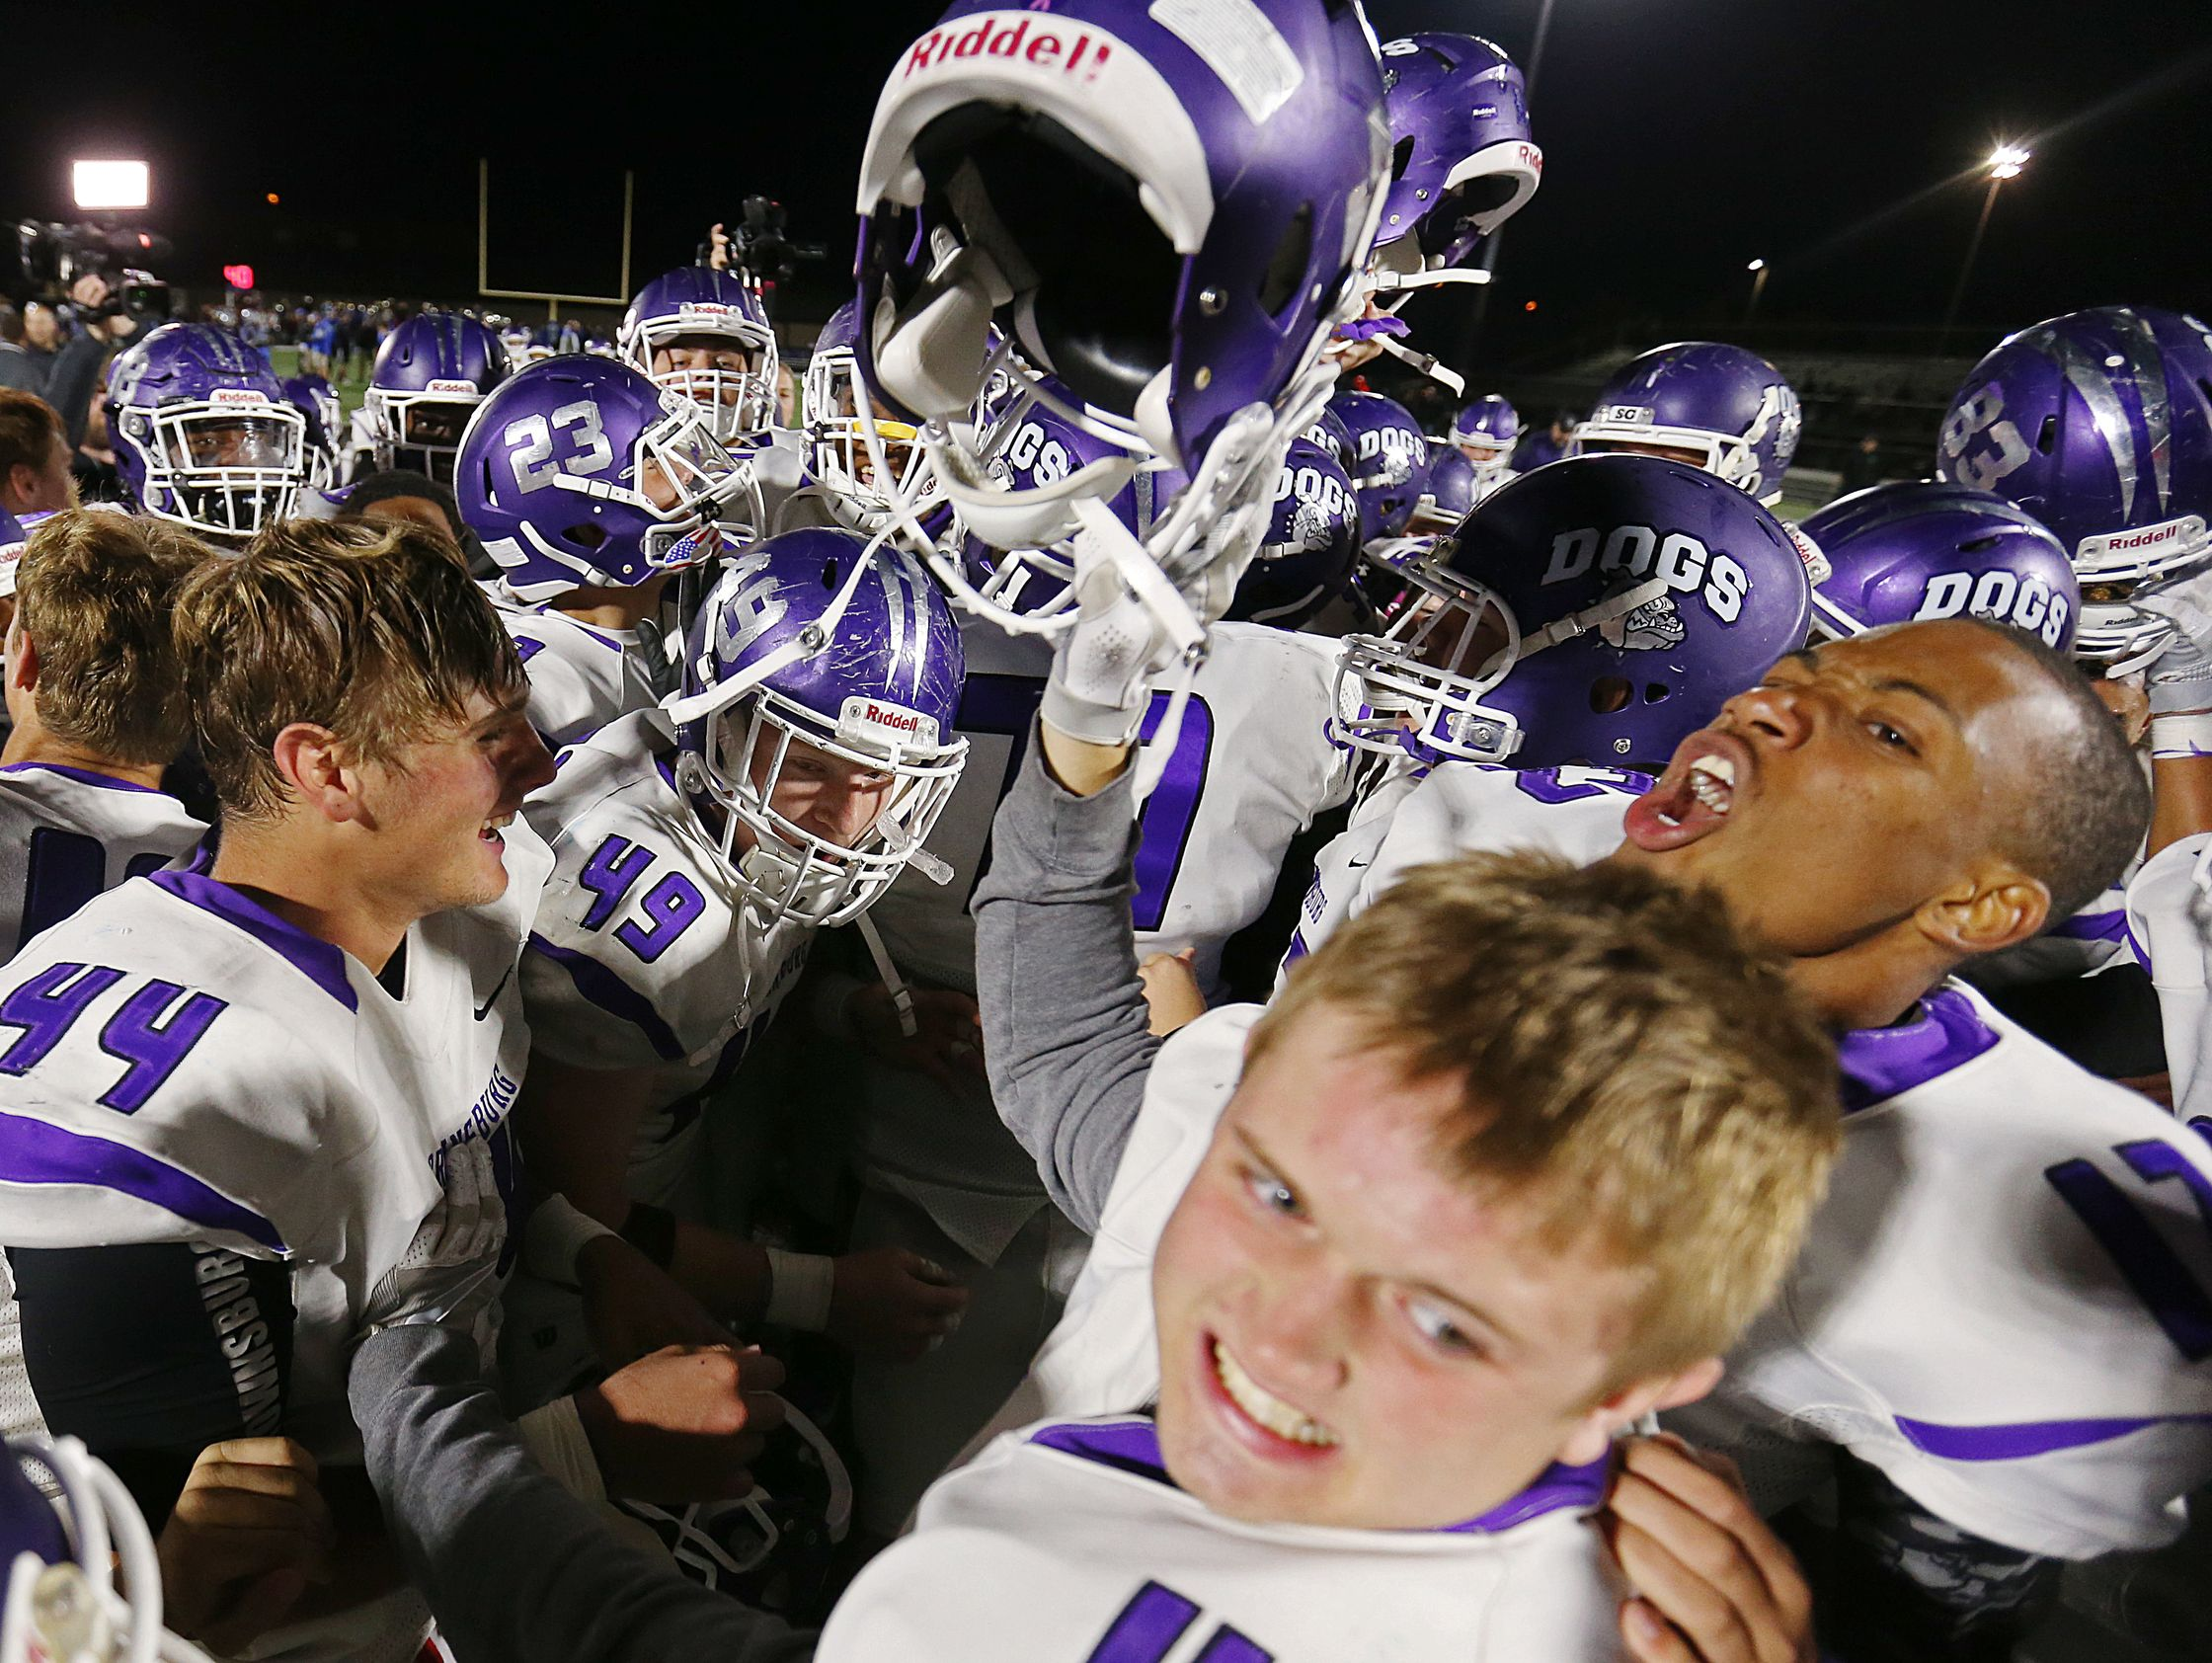 The Brownsburg Bulldogs celebrate their win against Hamilton Southeastern after the game, Fishers, Ind., Friday, October 14, 2016. Brownsburg won the Hoosier Crossroads Conference title, 35-24.